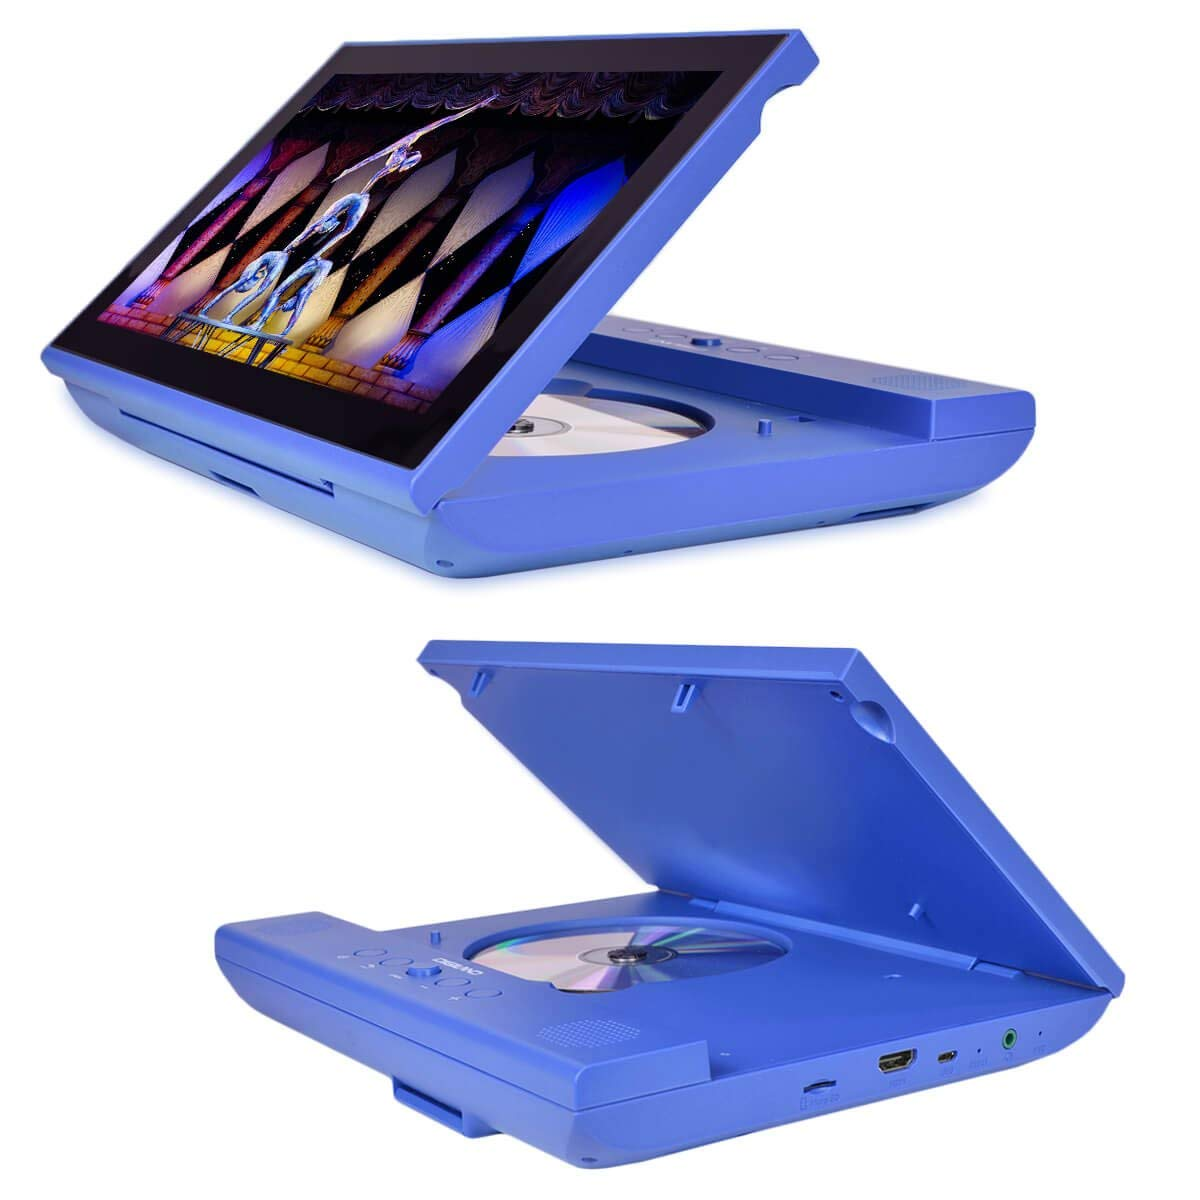 Digiland DL1001 2-in-1 Android Tablet + DVD Player - Core 1 3GHz 1GB 16GB  10 1 Touchscreen Tablet Android